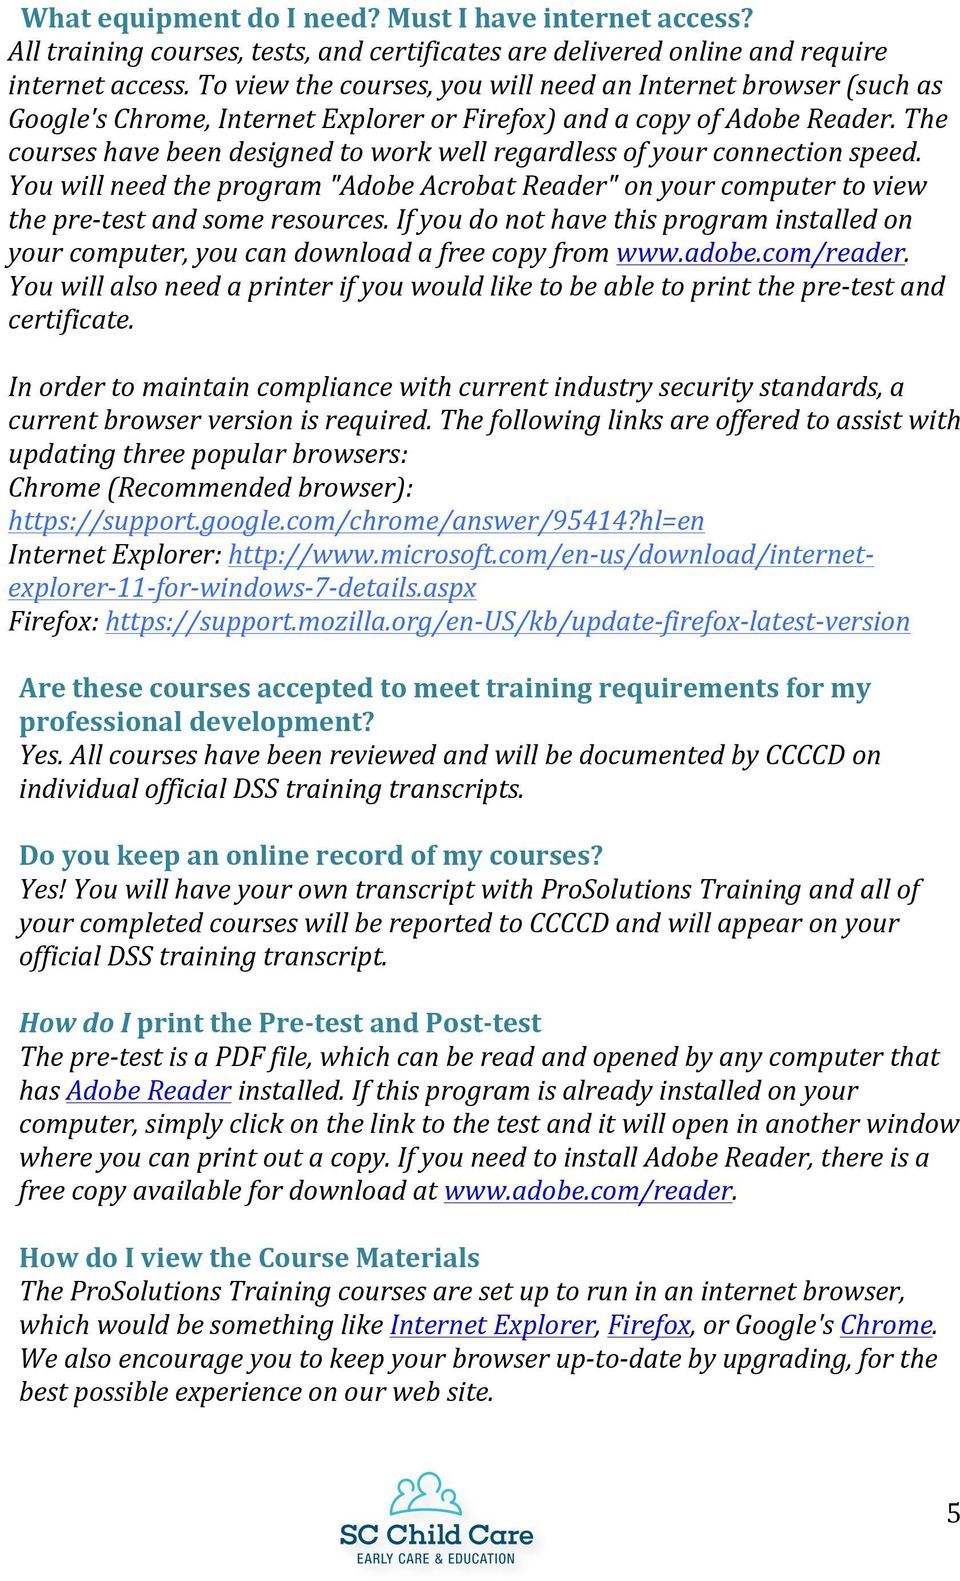 Frequently asked questions pdf the courses have been designed to work well regardless of your connection speed you will fandeluxe Choice Image